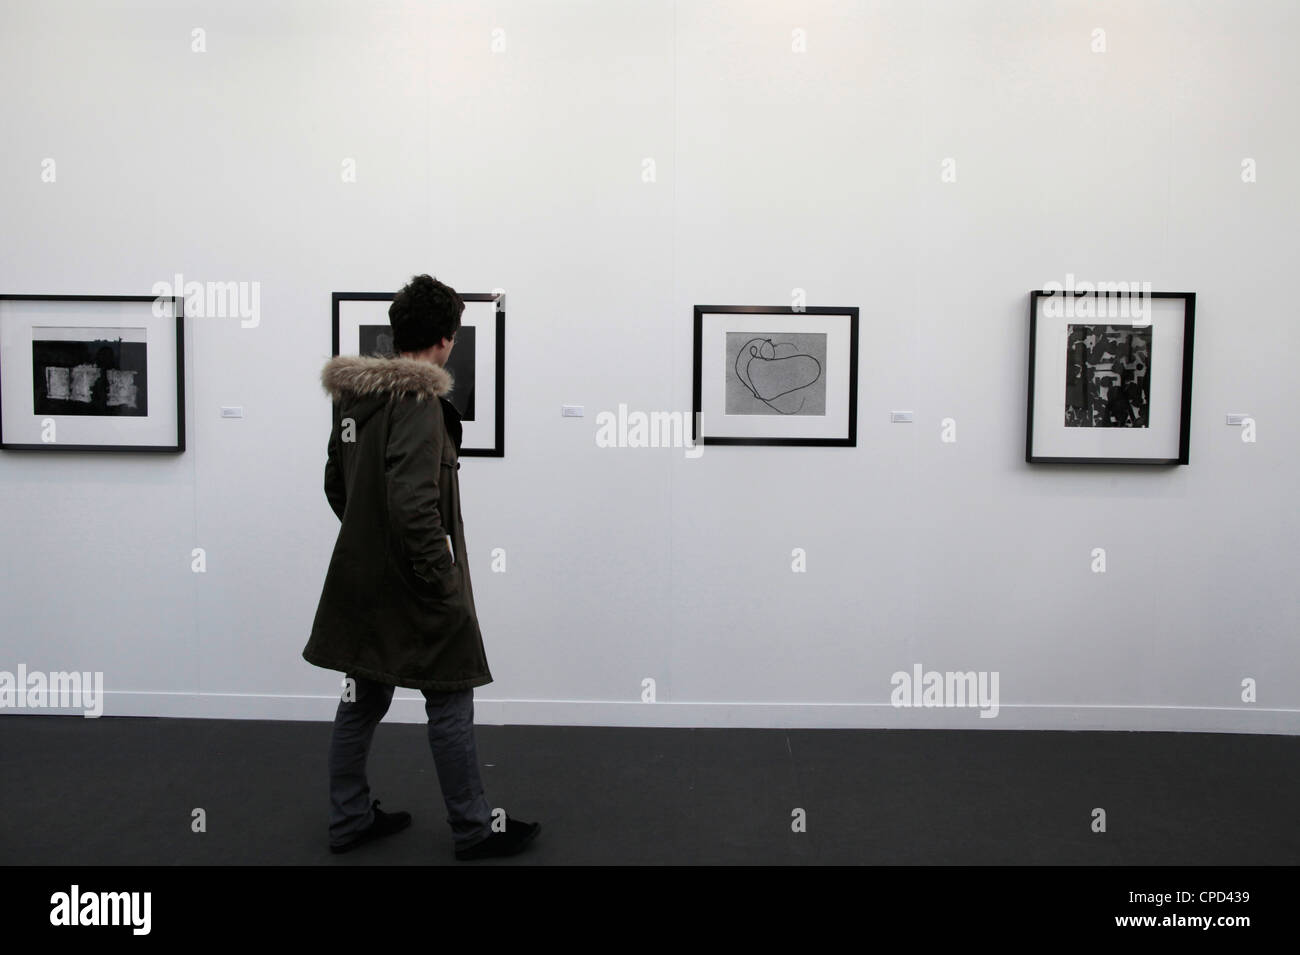 Paris photo show, Paris, France, Europe - Stock Image